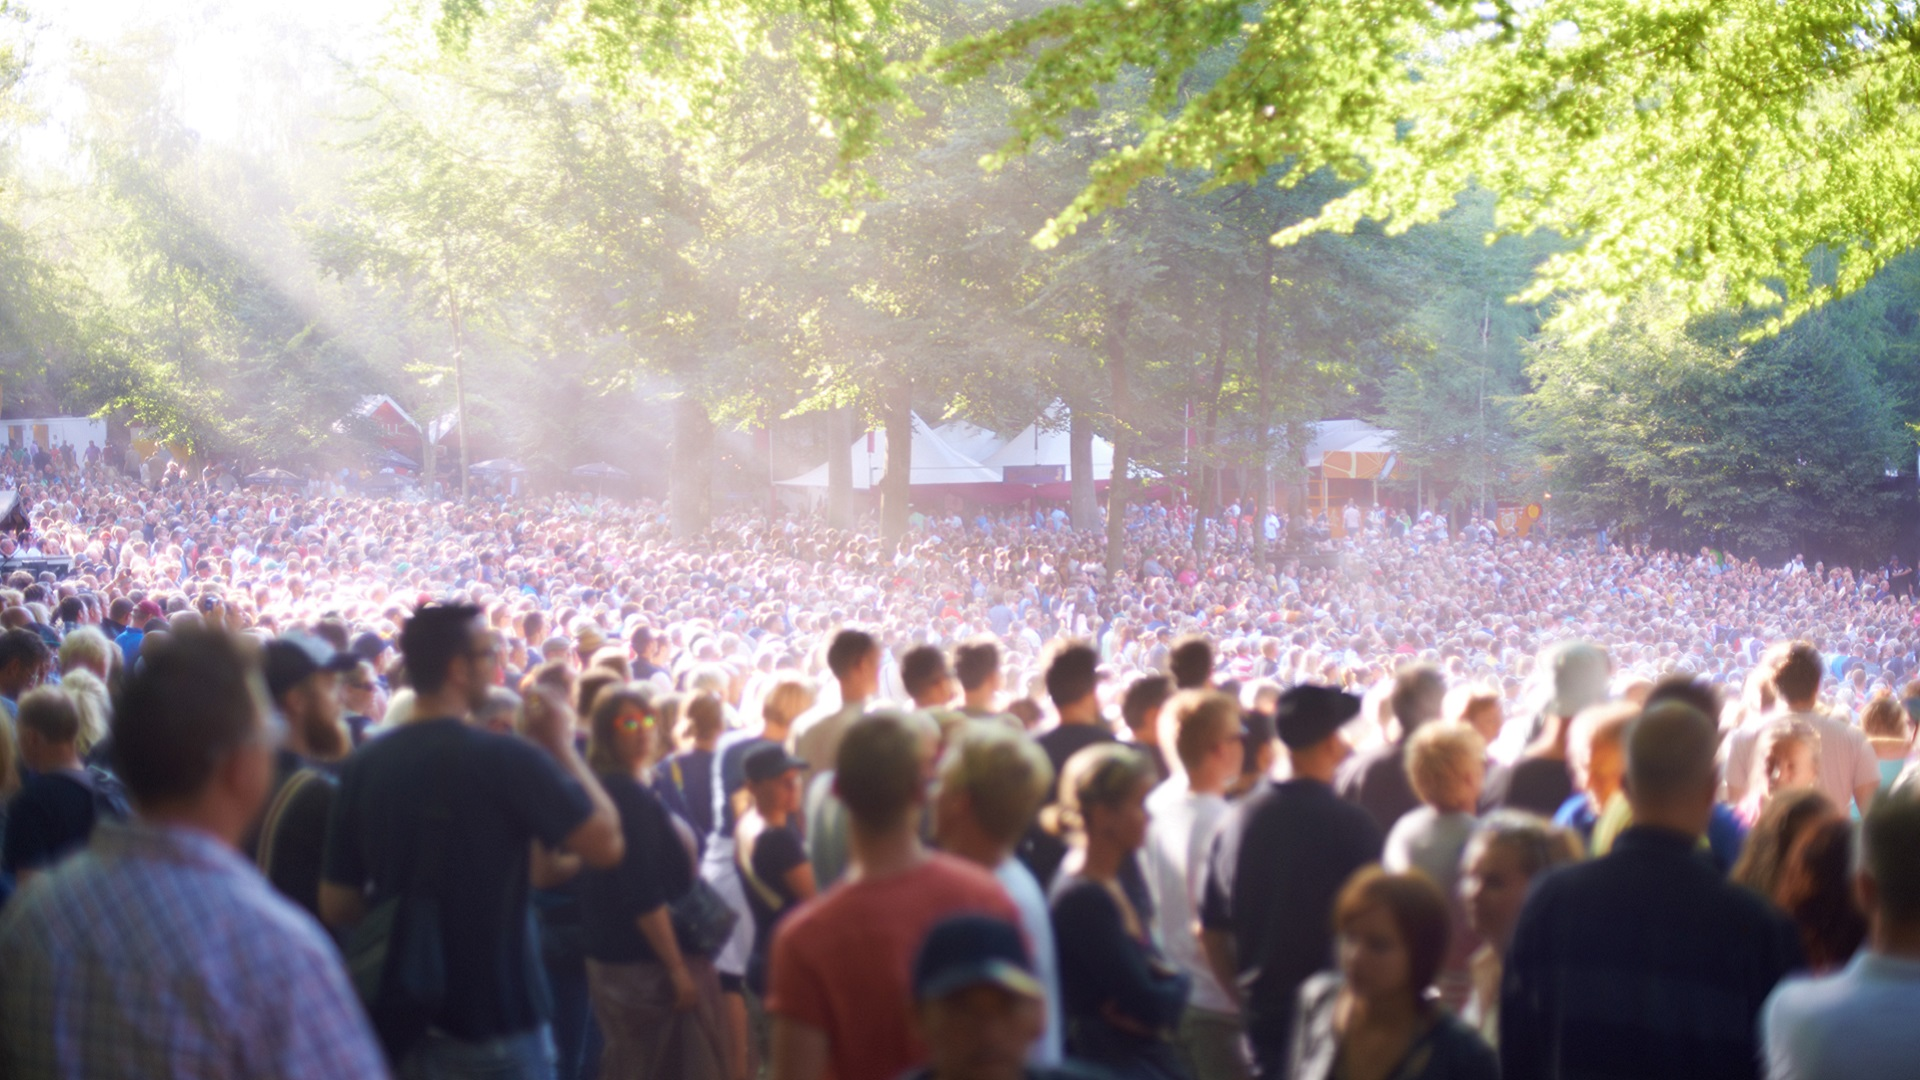 mass gathering_public event_crowd